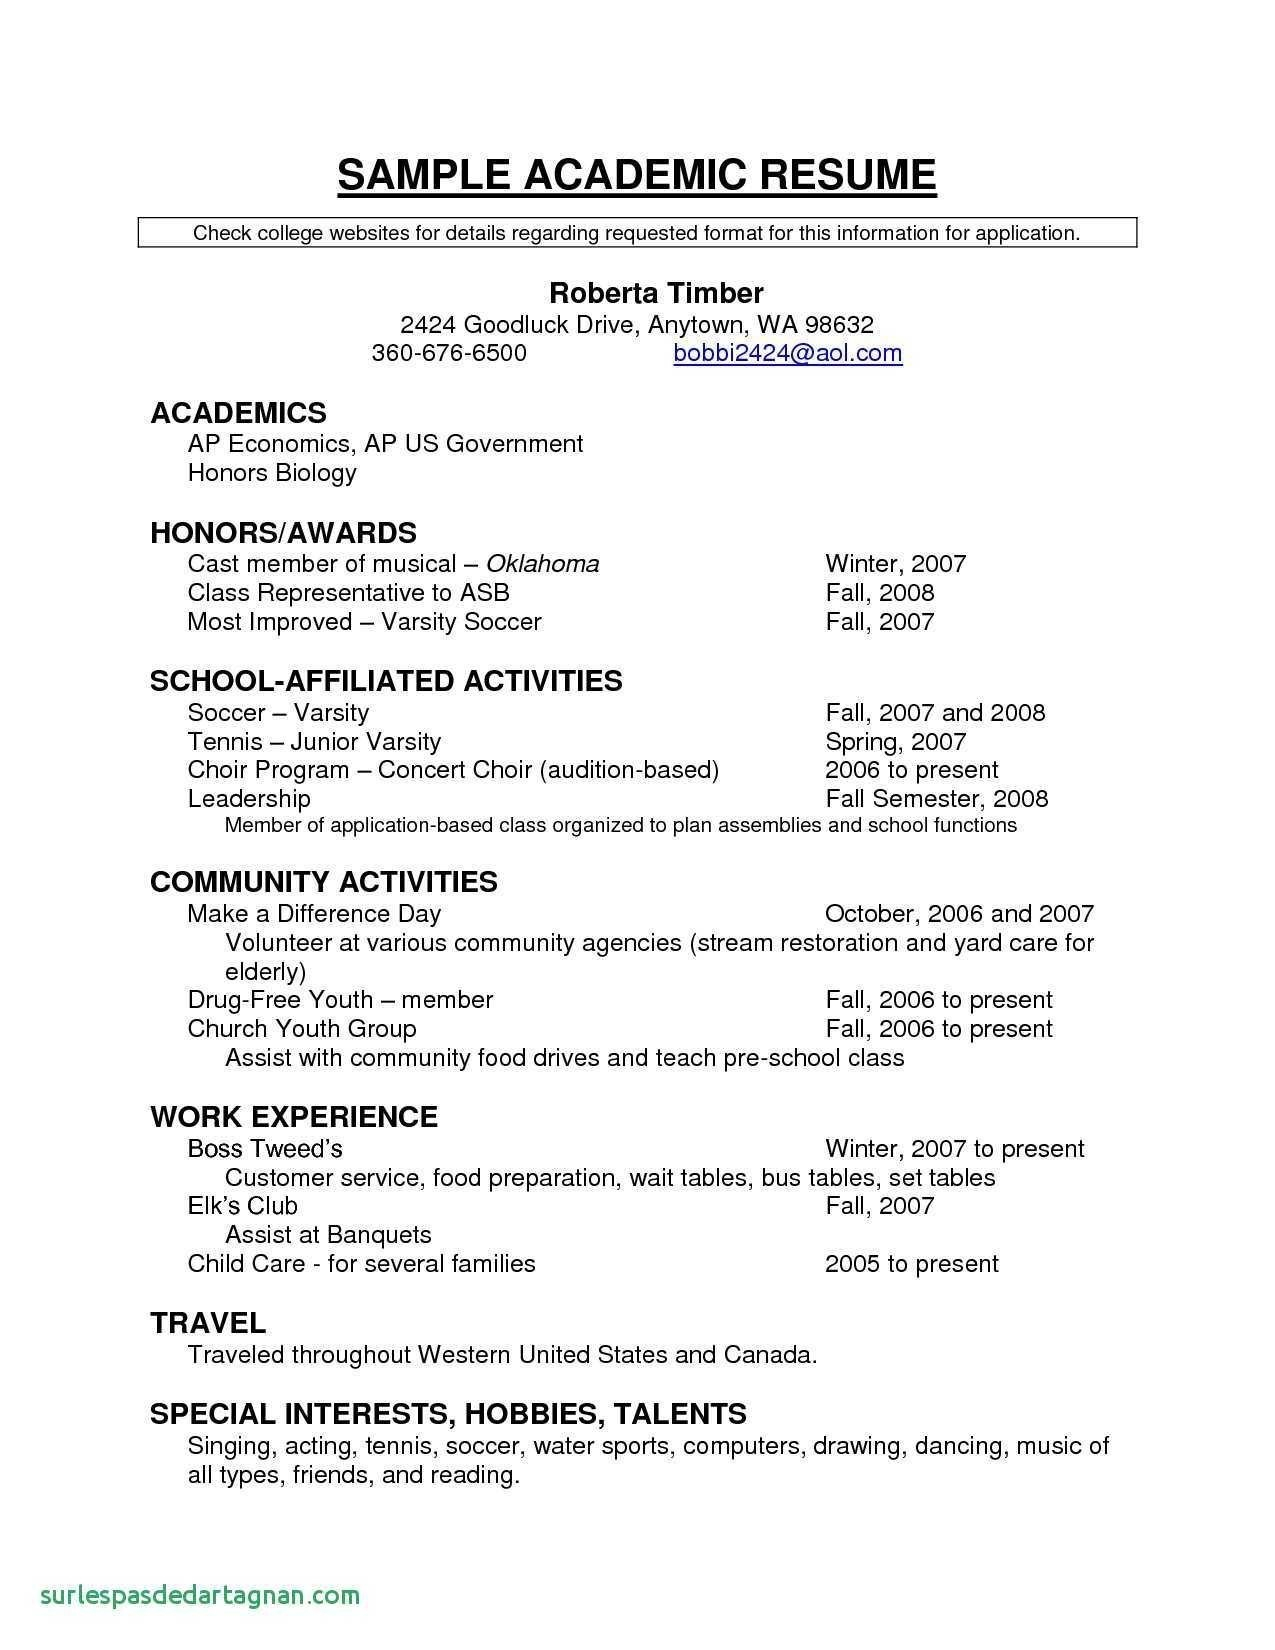 Financial Advisor Resume - Financial Advisor Resume Unique Fresh Financial Advisor Resume